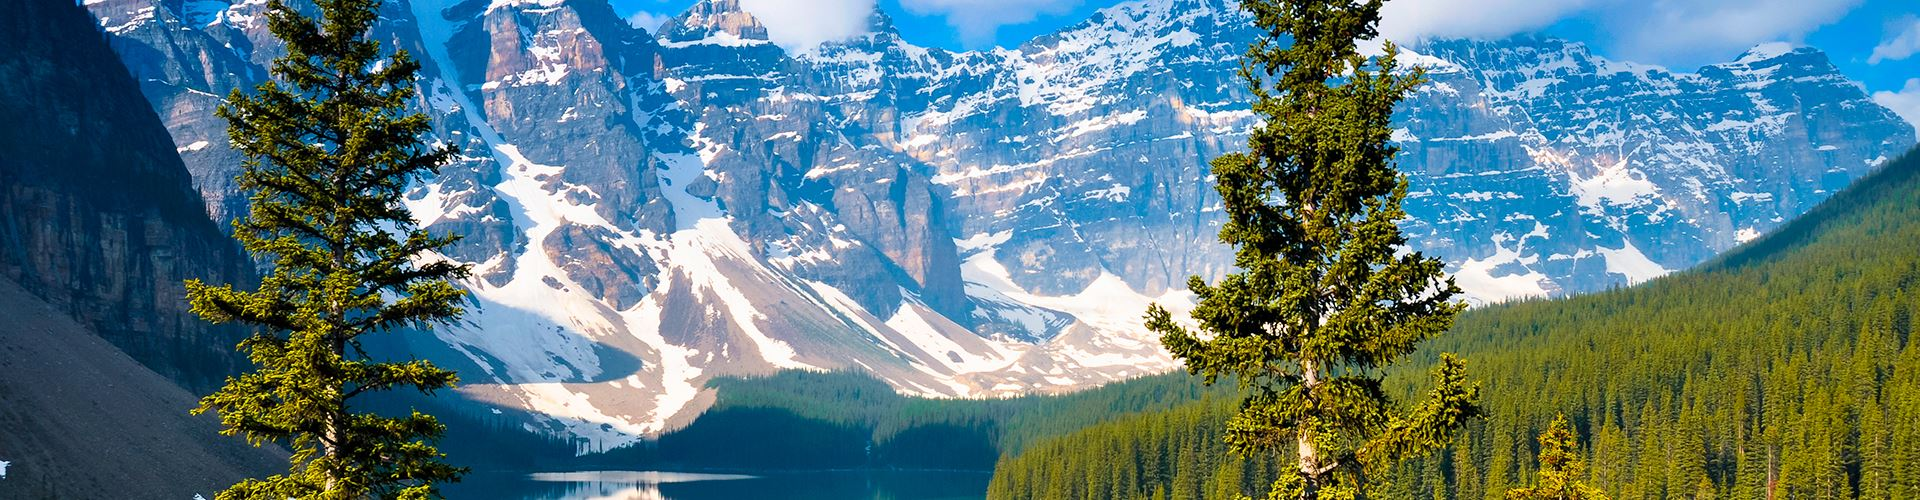 Moraine-Lake,-Rocky-Mountains,-Canada-(louise).jpg